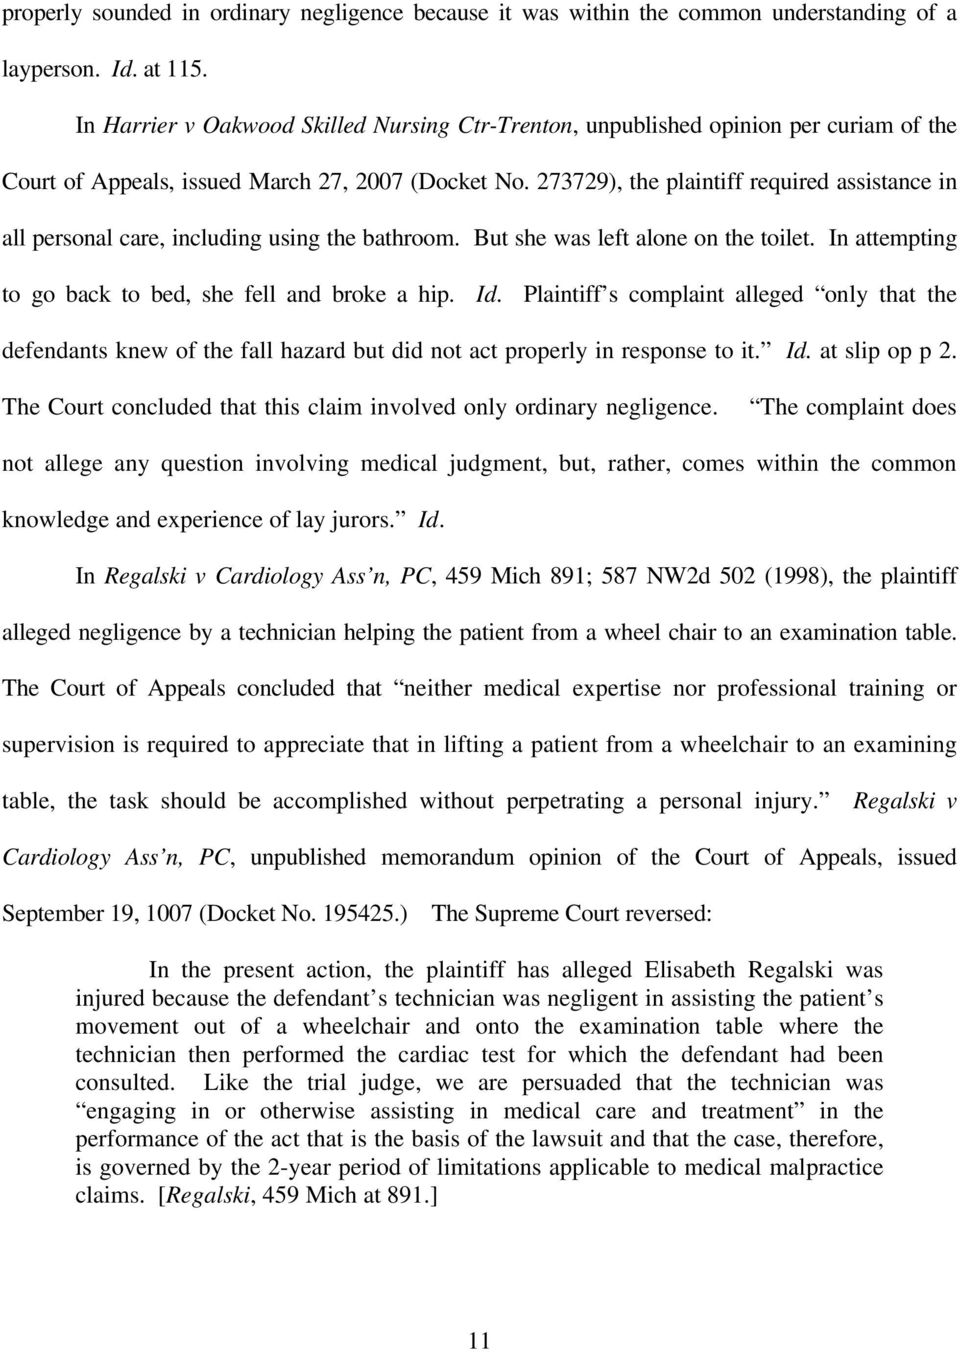 273729), the plaintiff required assistance in all personal care, including using the bathroom. But she was left alone on the toilet. In attempting to go back to bed, she fell and broke a hip. Id.